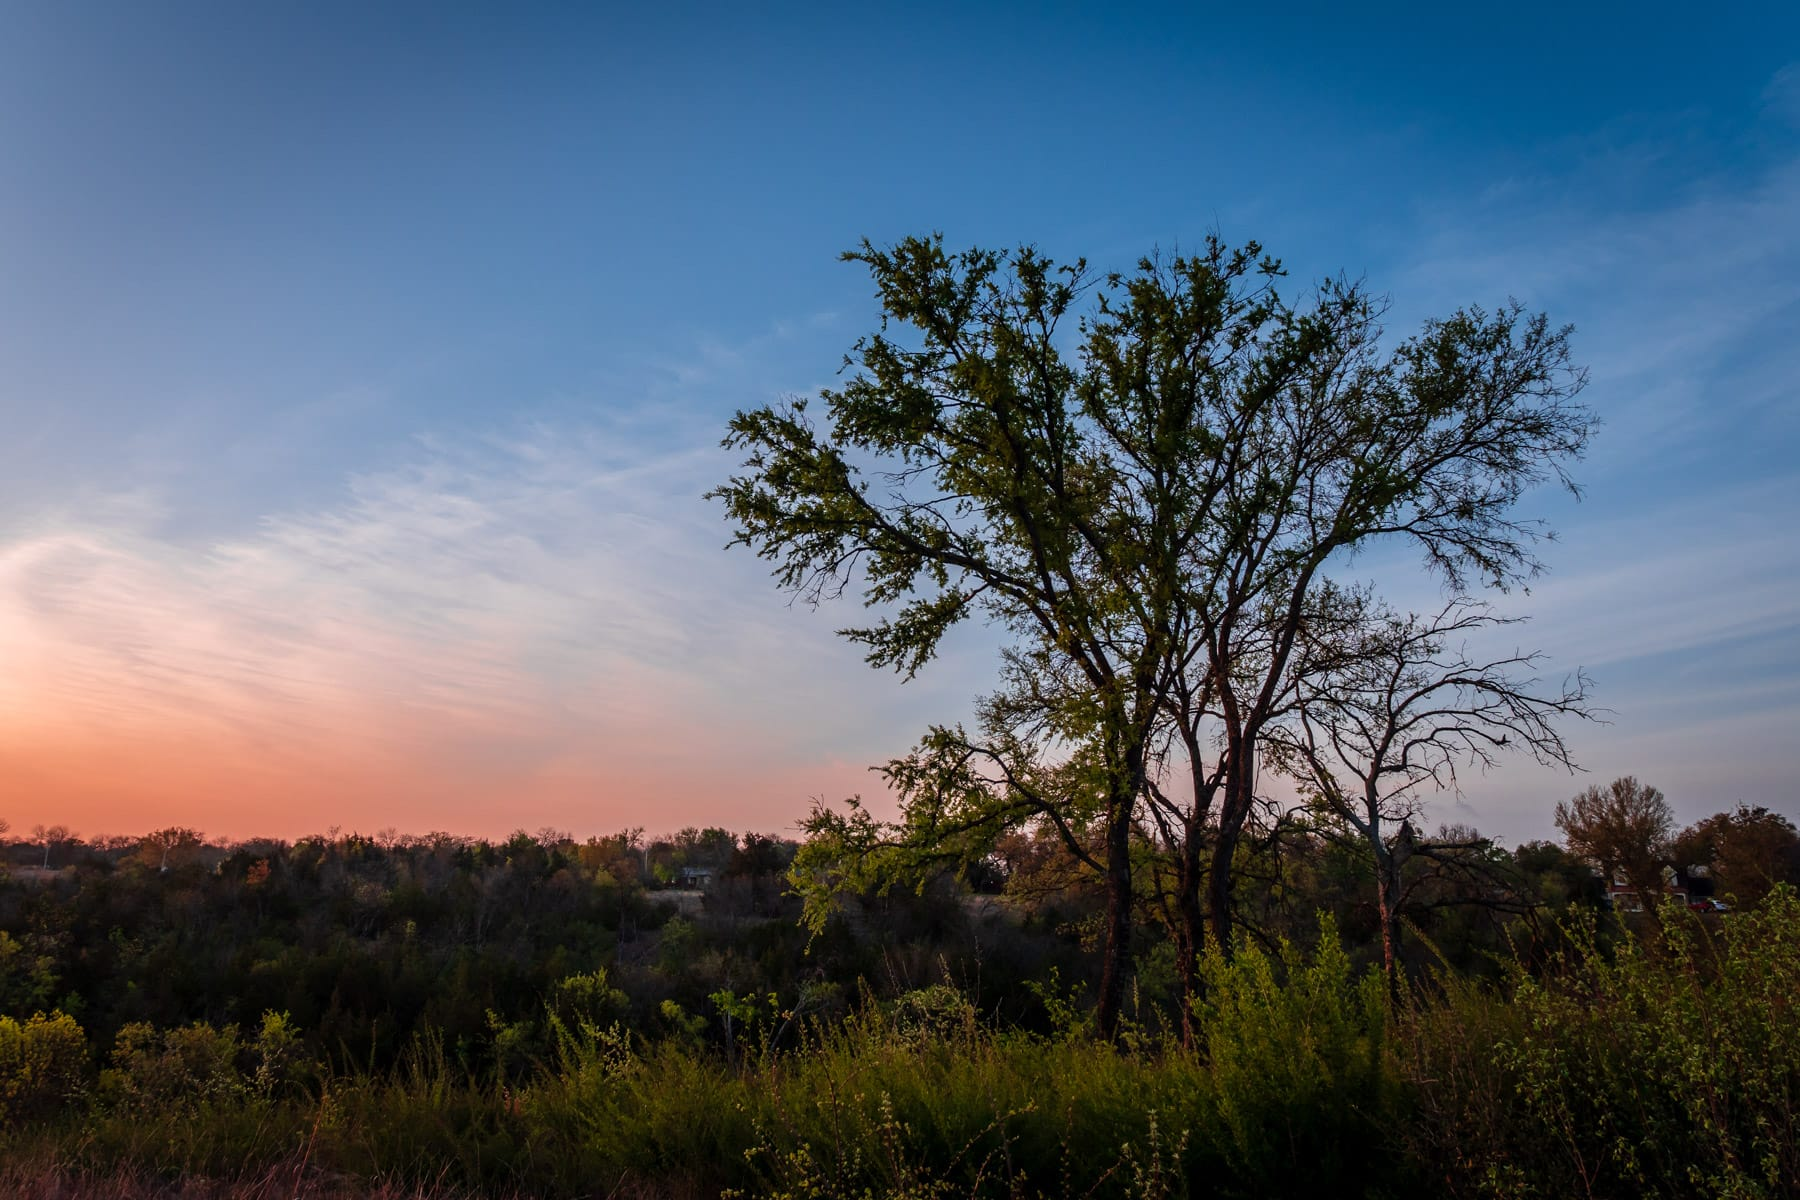 The first light of morning at Tandy Hills Natural Area, Fort Worth, Texas.